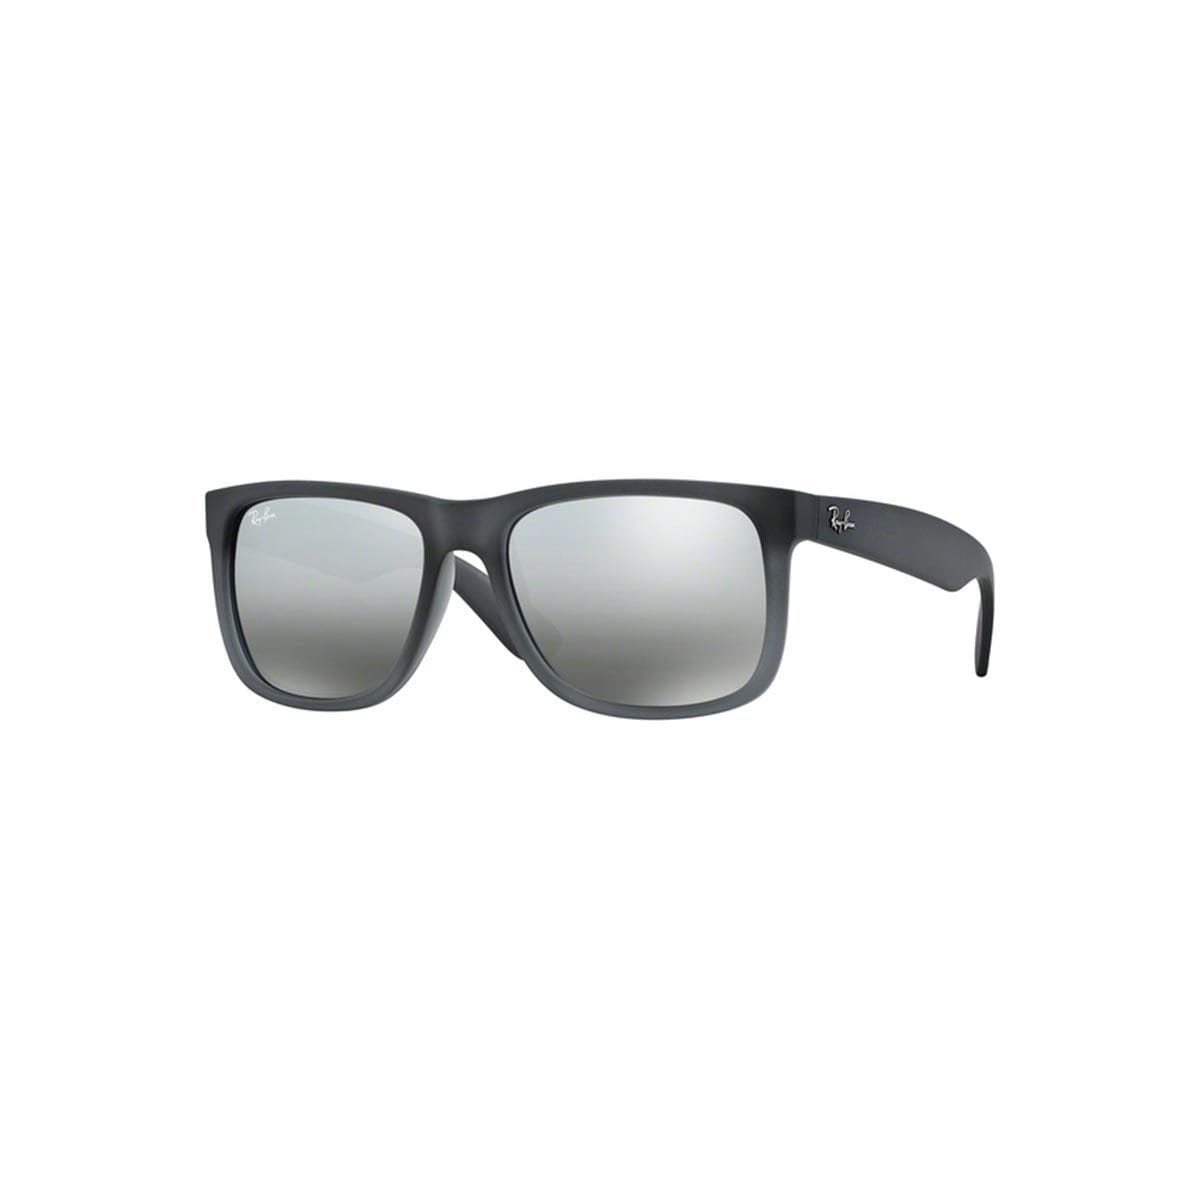 SunglassesFind Ban Deals Ray Women's At Shopping Great BshxtQdCr